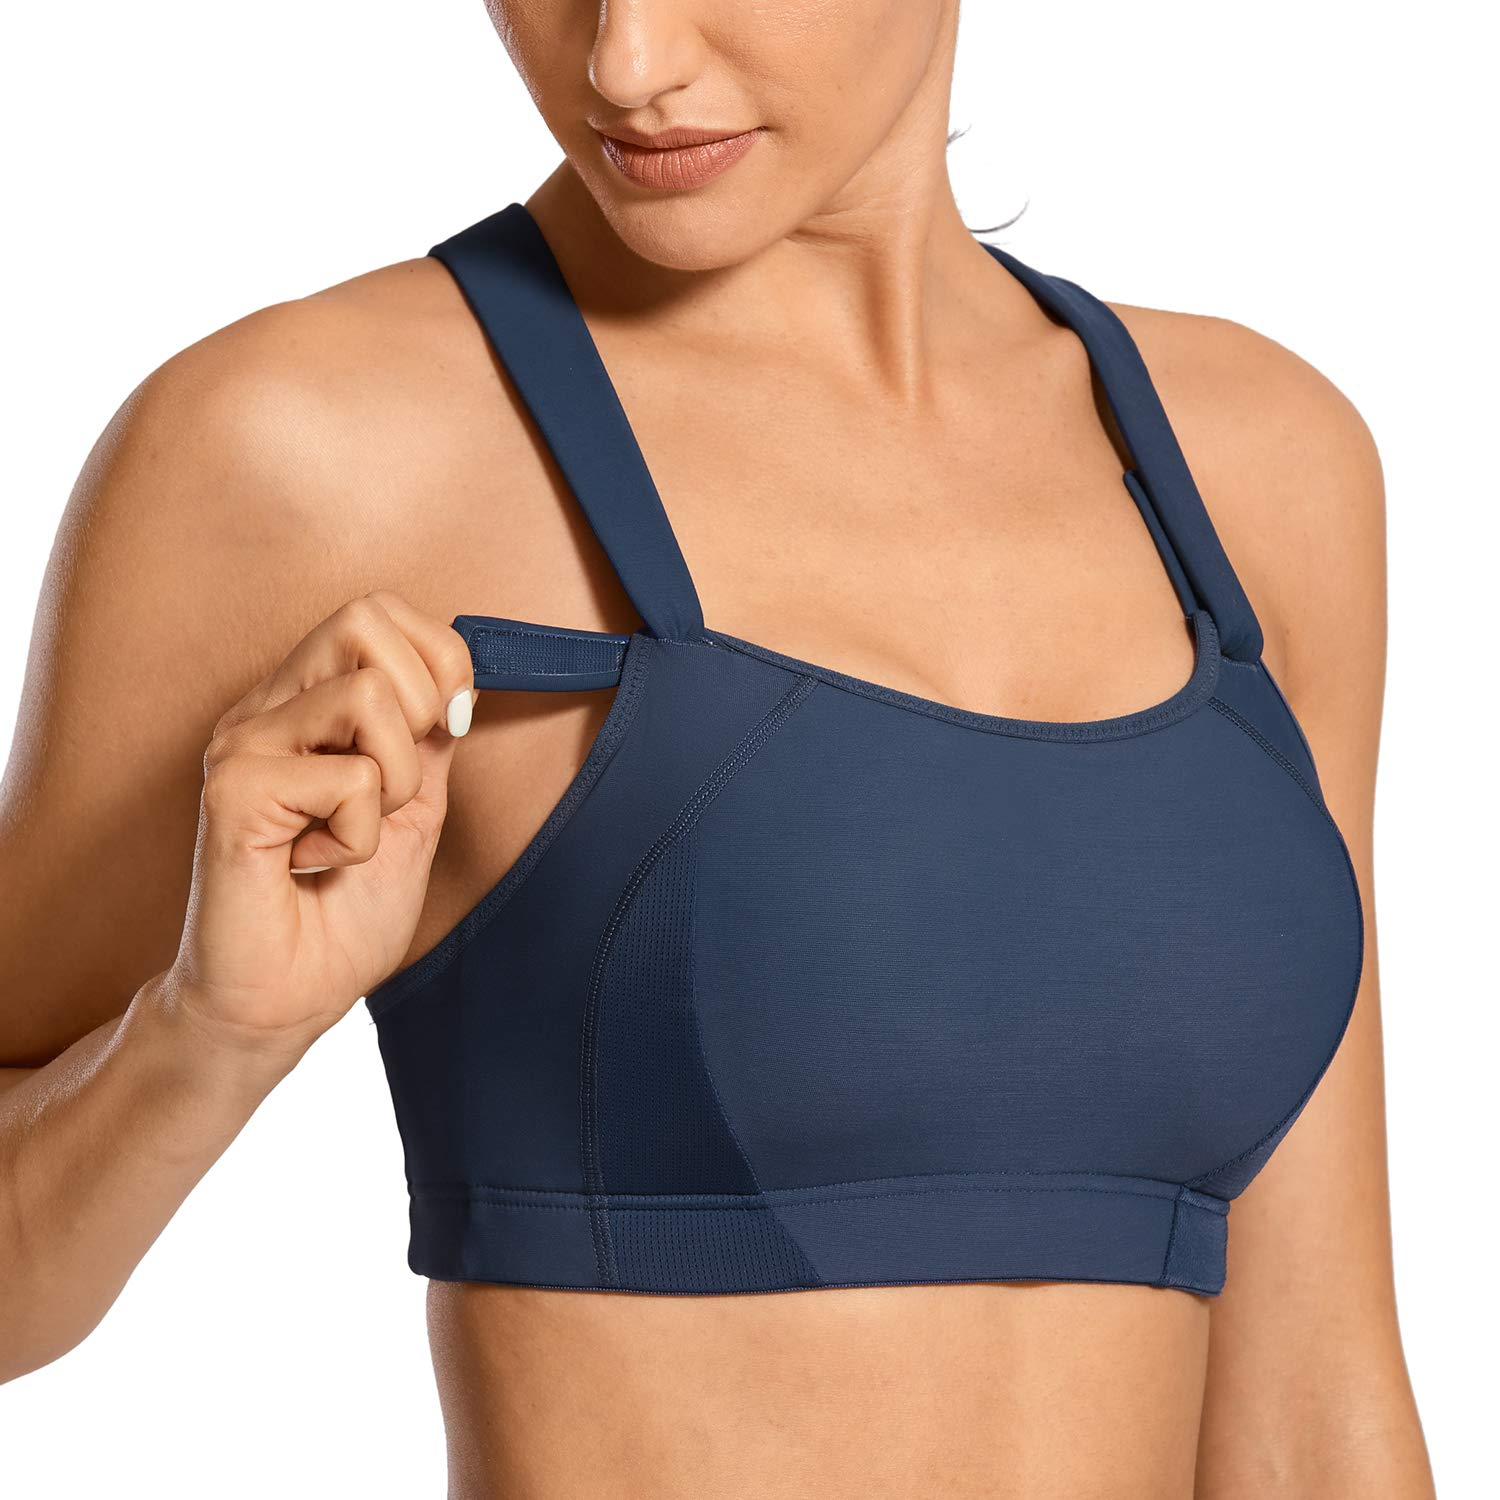 SYROKAN Women's Front Adjustable Lightly Padded Wirefree Racerback High Impact Sports Bra